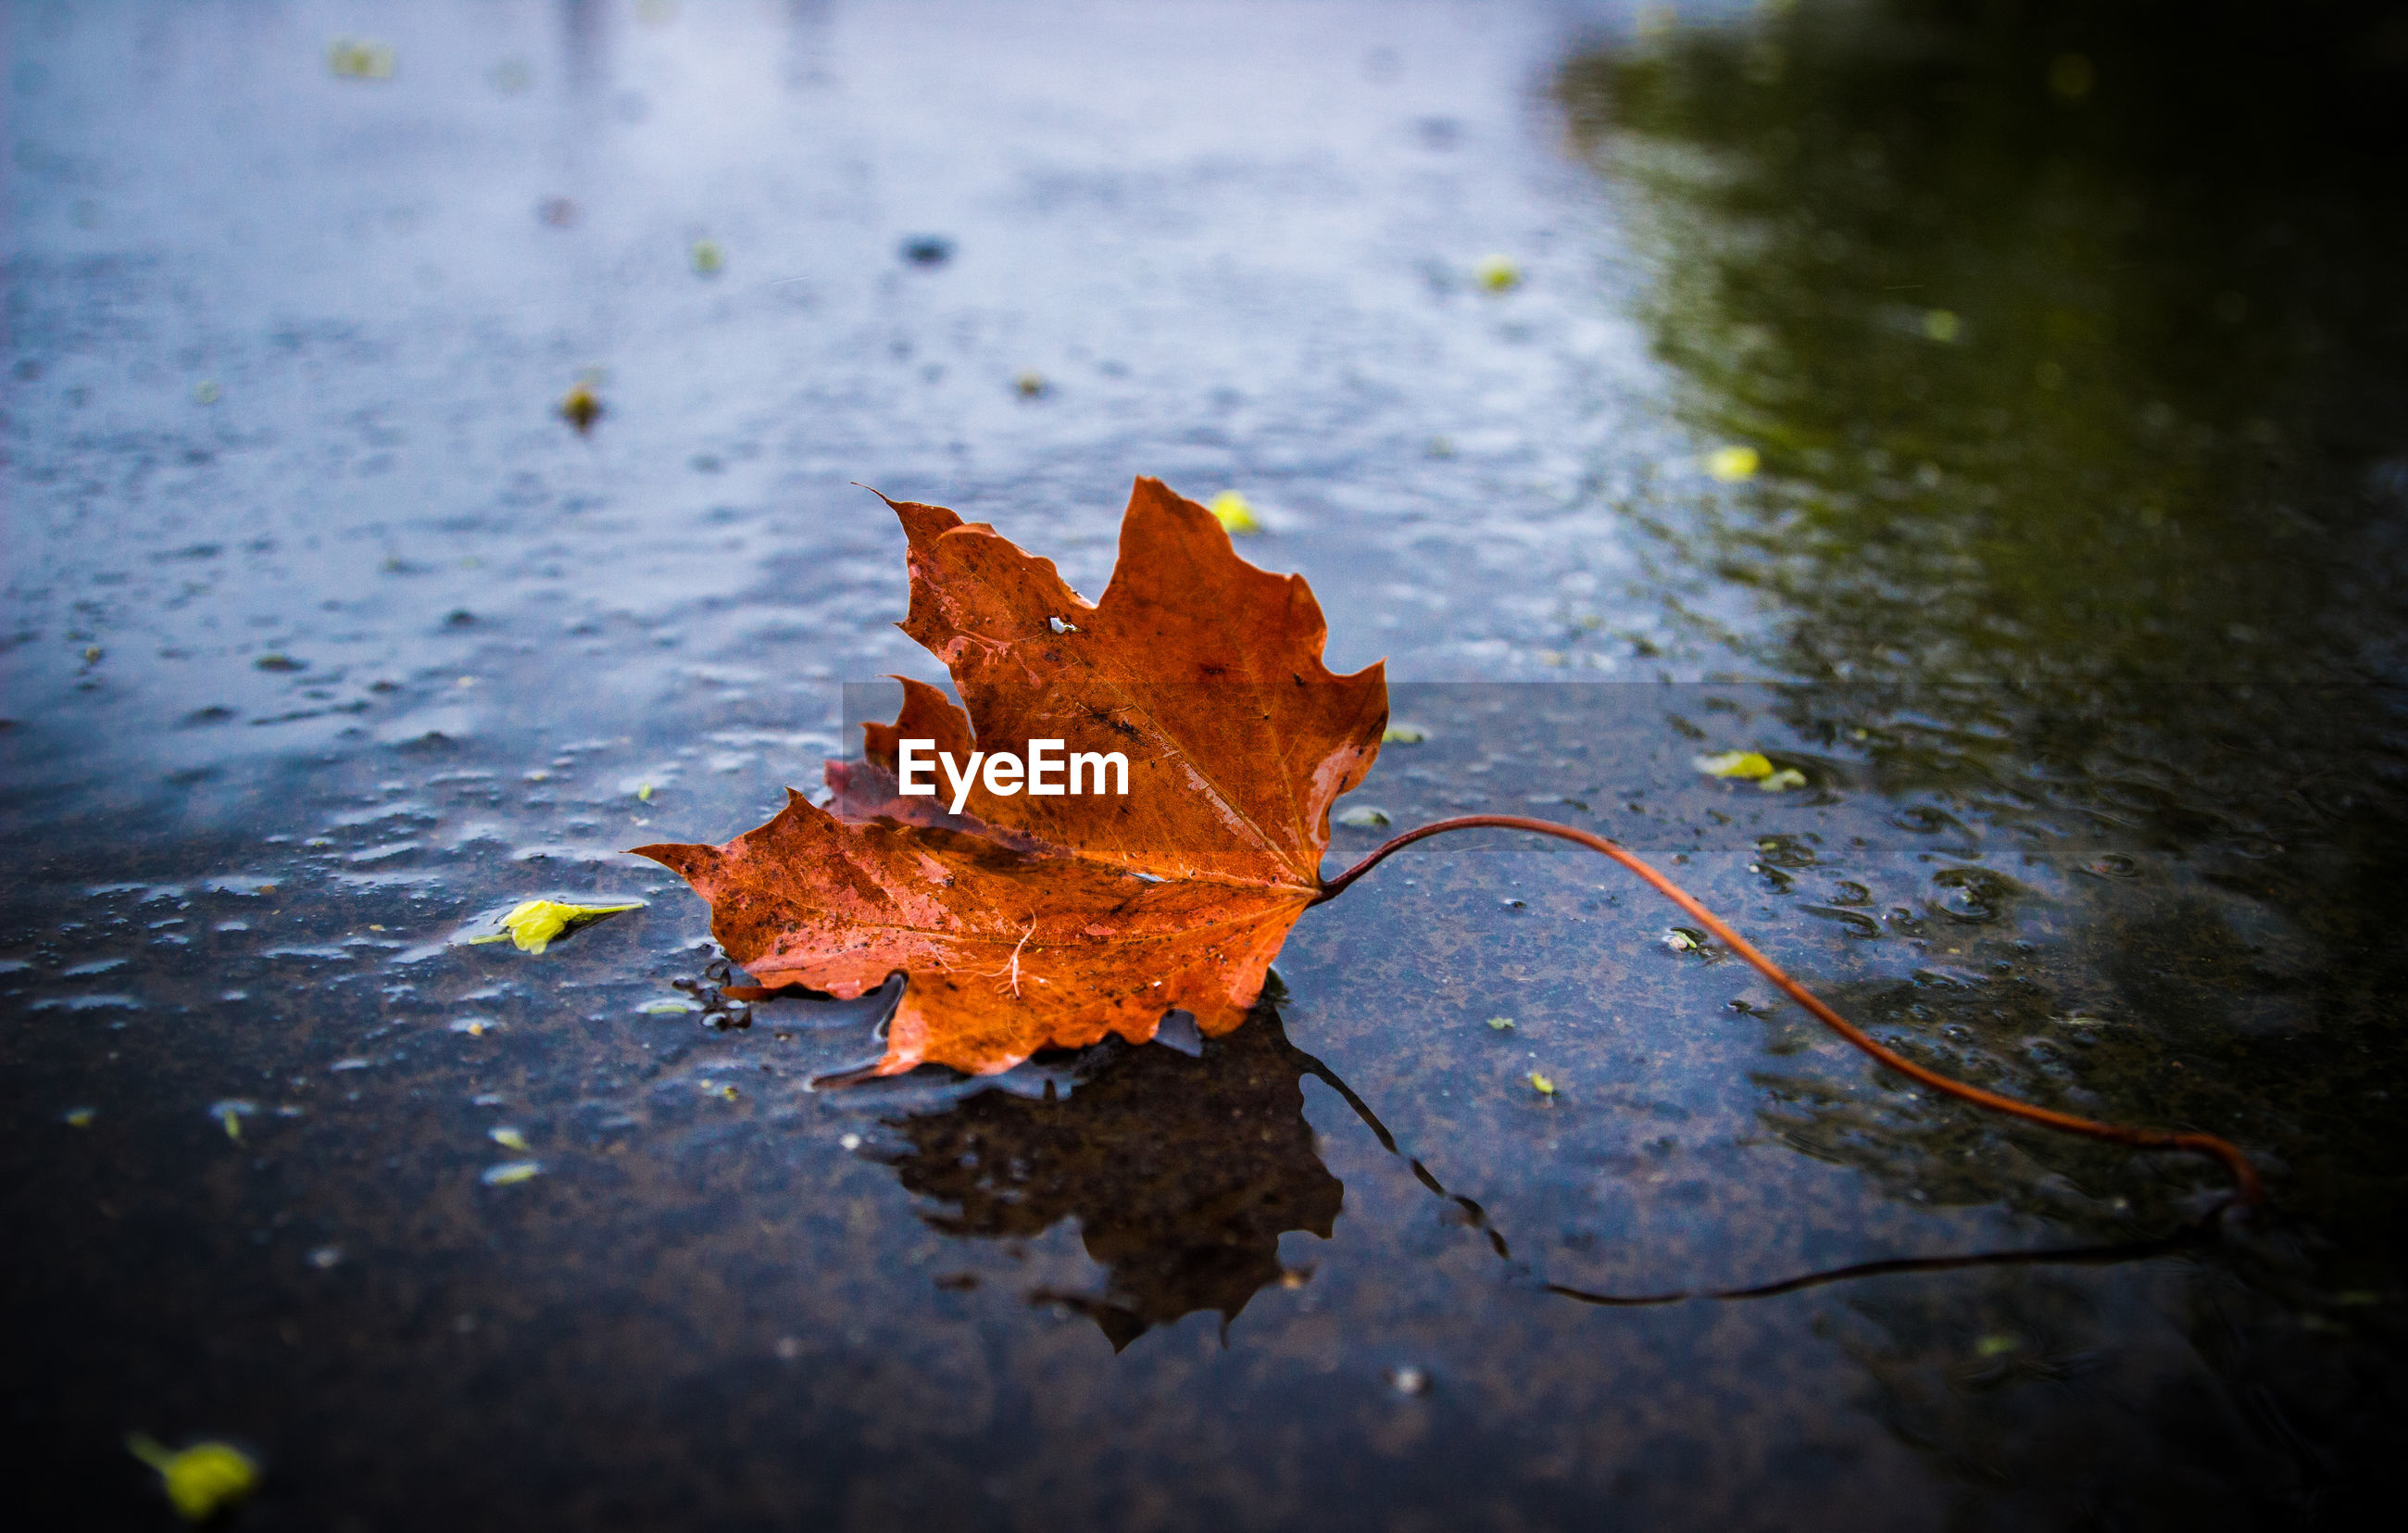 CLOSE-UP OF DRY MAPLE LEAF IN PUDDLE